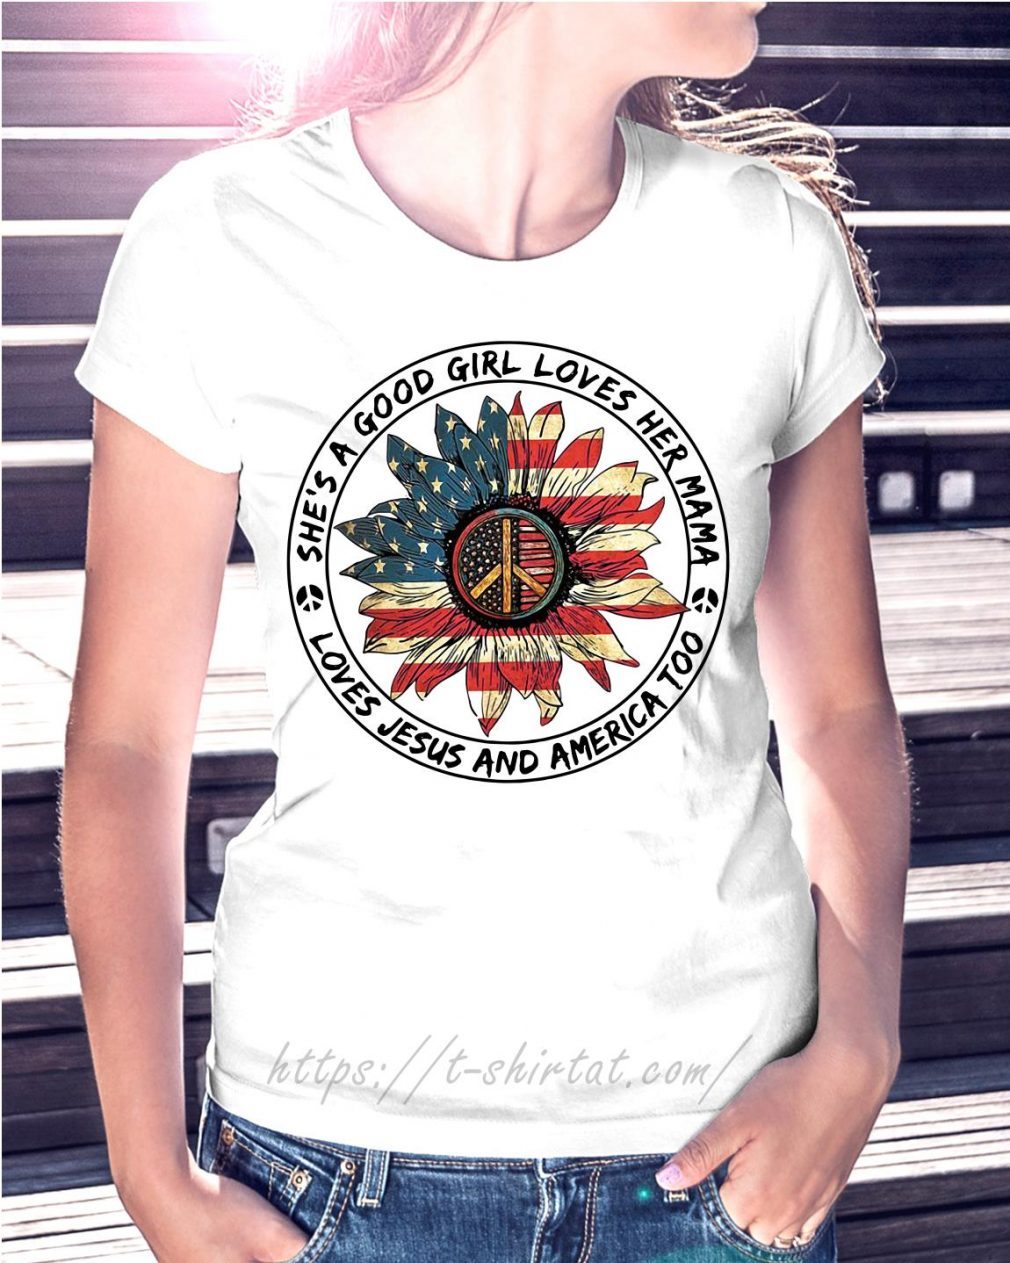 Flower hippie flag she's a good girl loves her mama loves Jesus and America too T-shirt